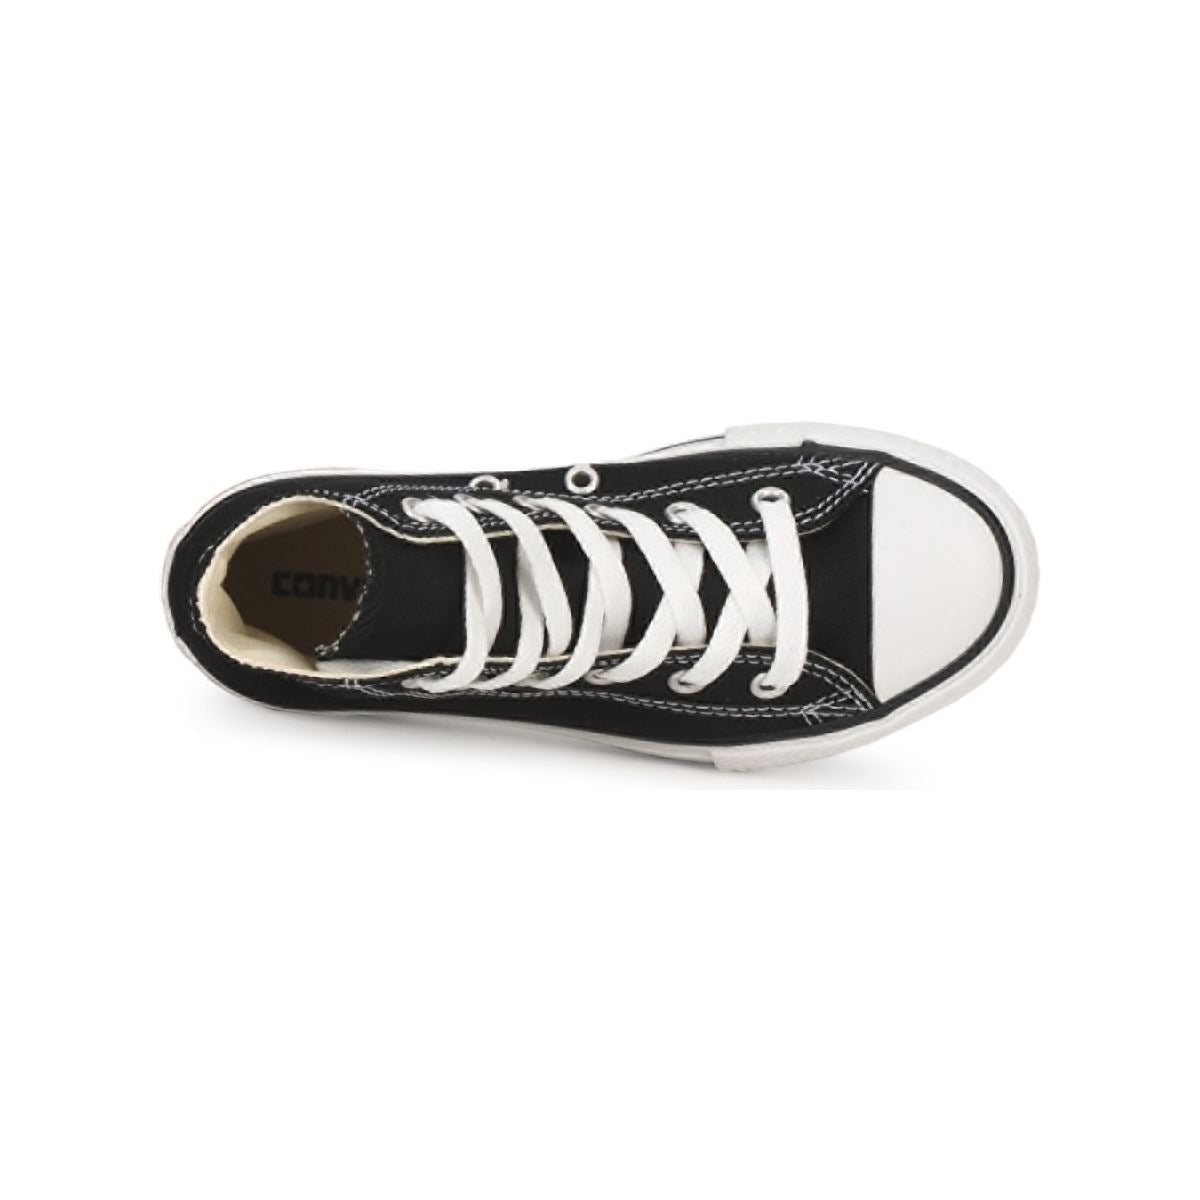 Converse CT All Star Black 3J231C Youths UK